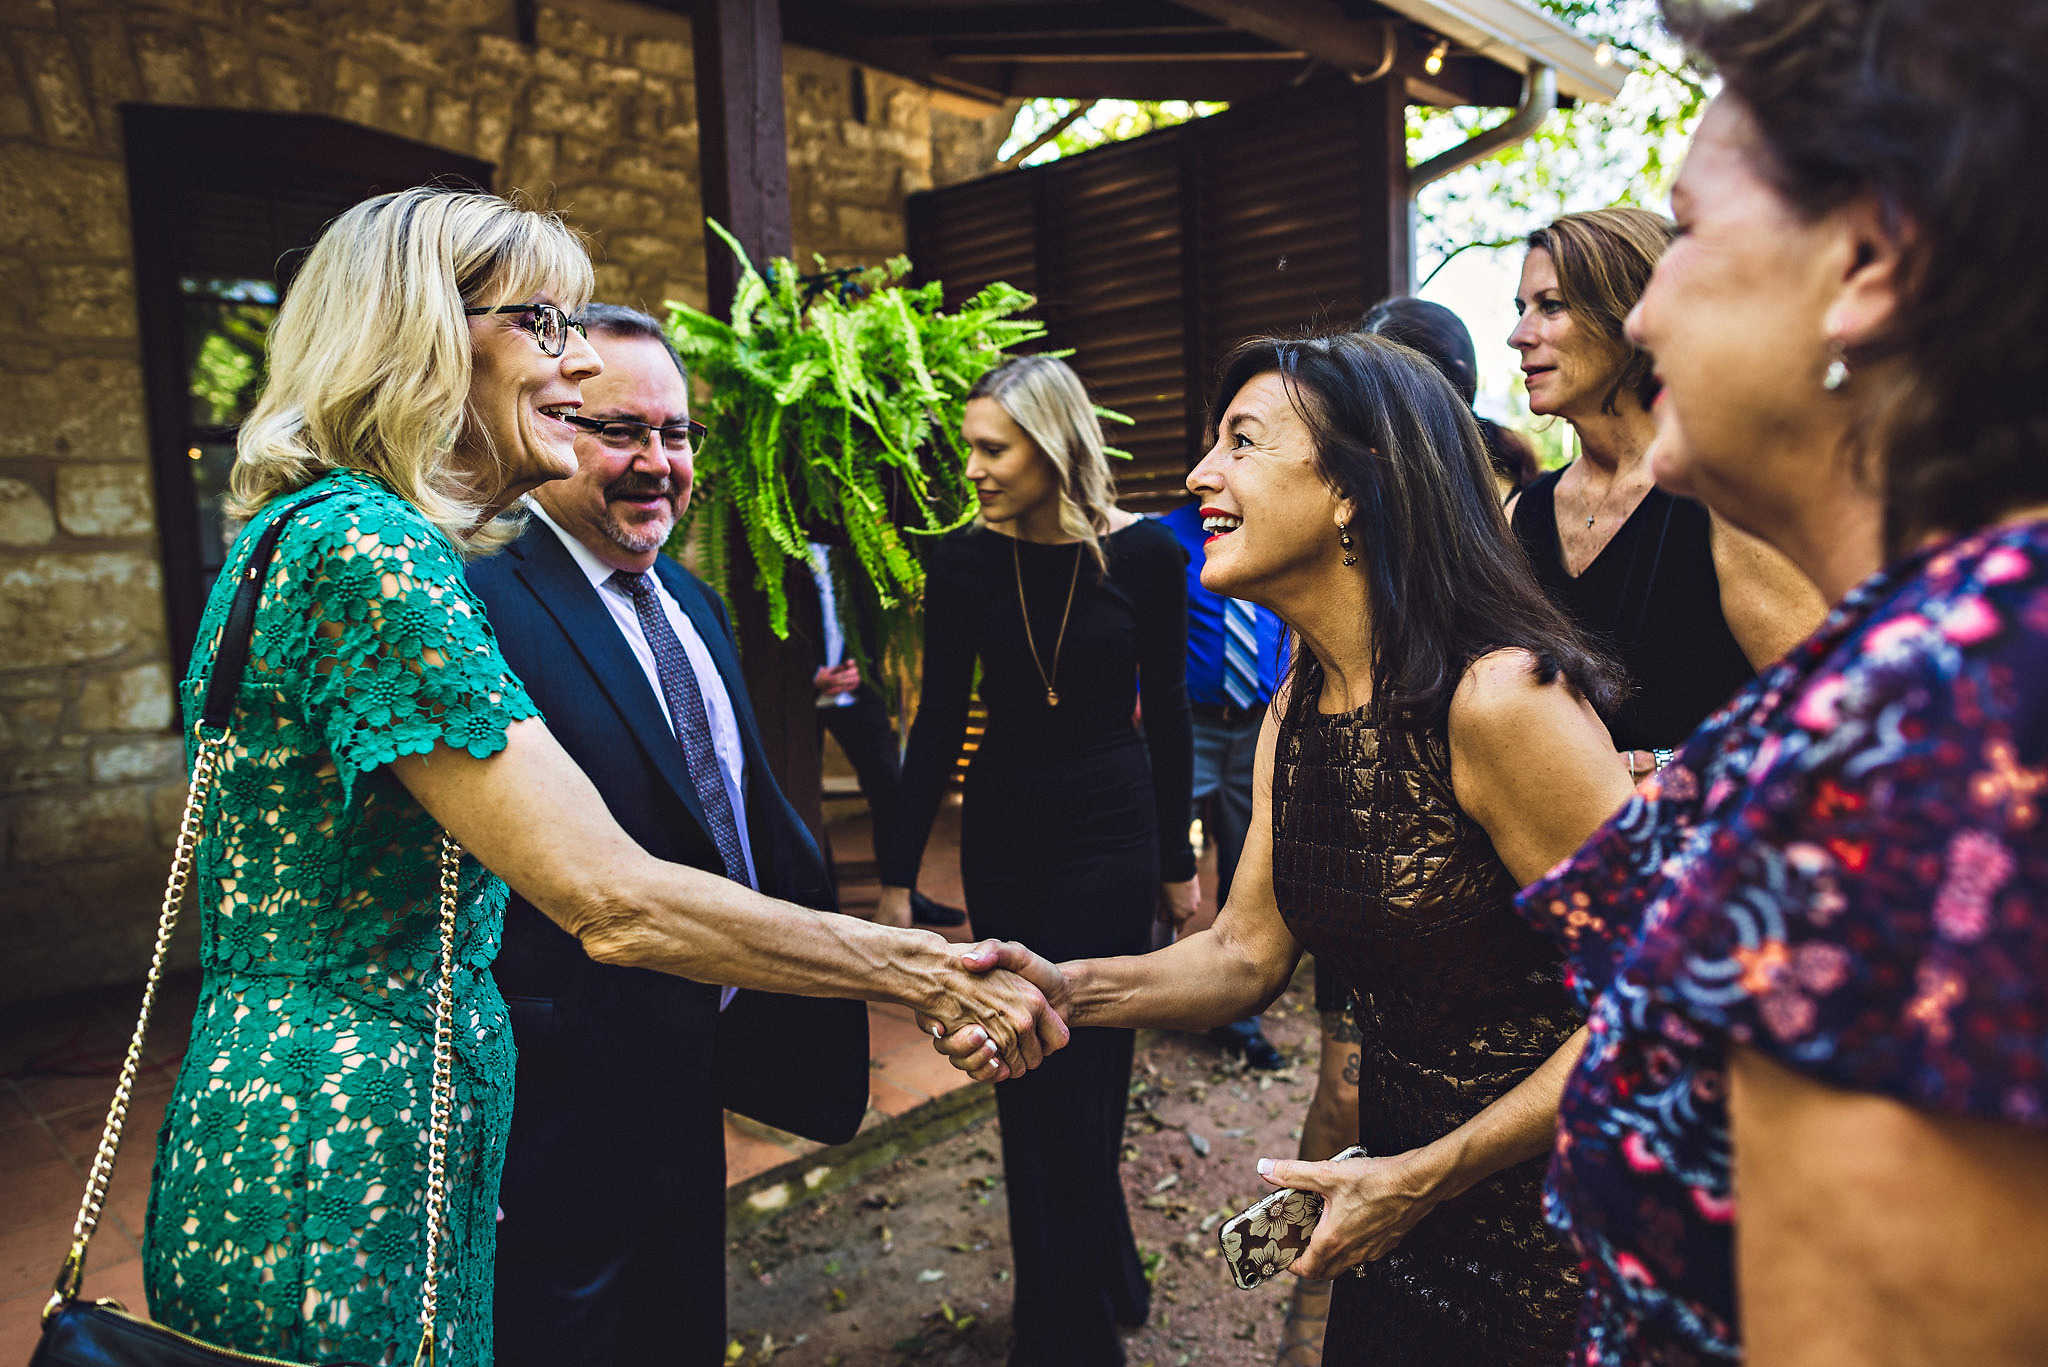 Eirik Halvorsen rustic wedding Fredericksburg Austin Texas wedding photographer-31.jpg